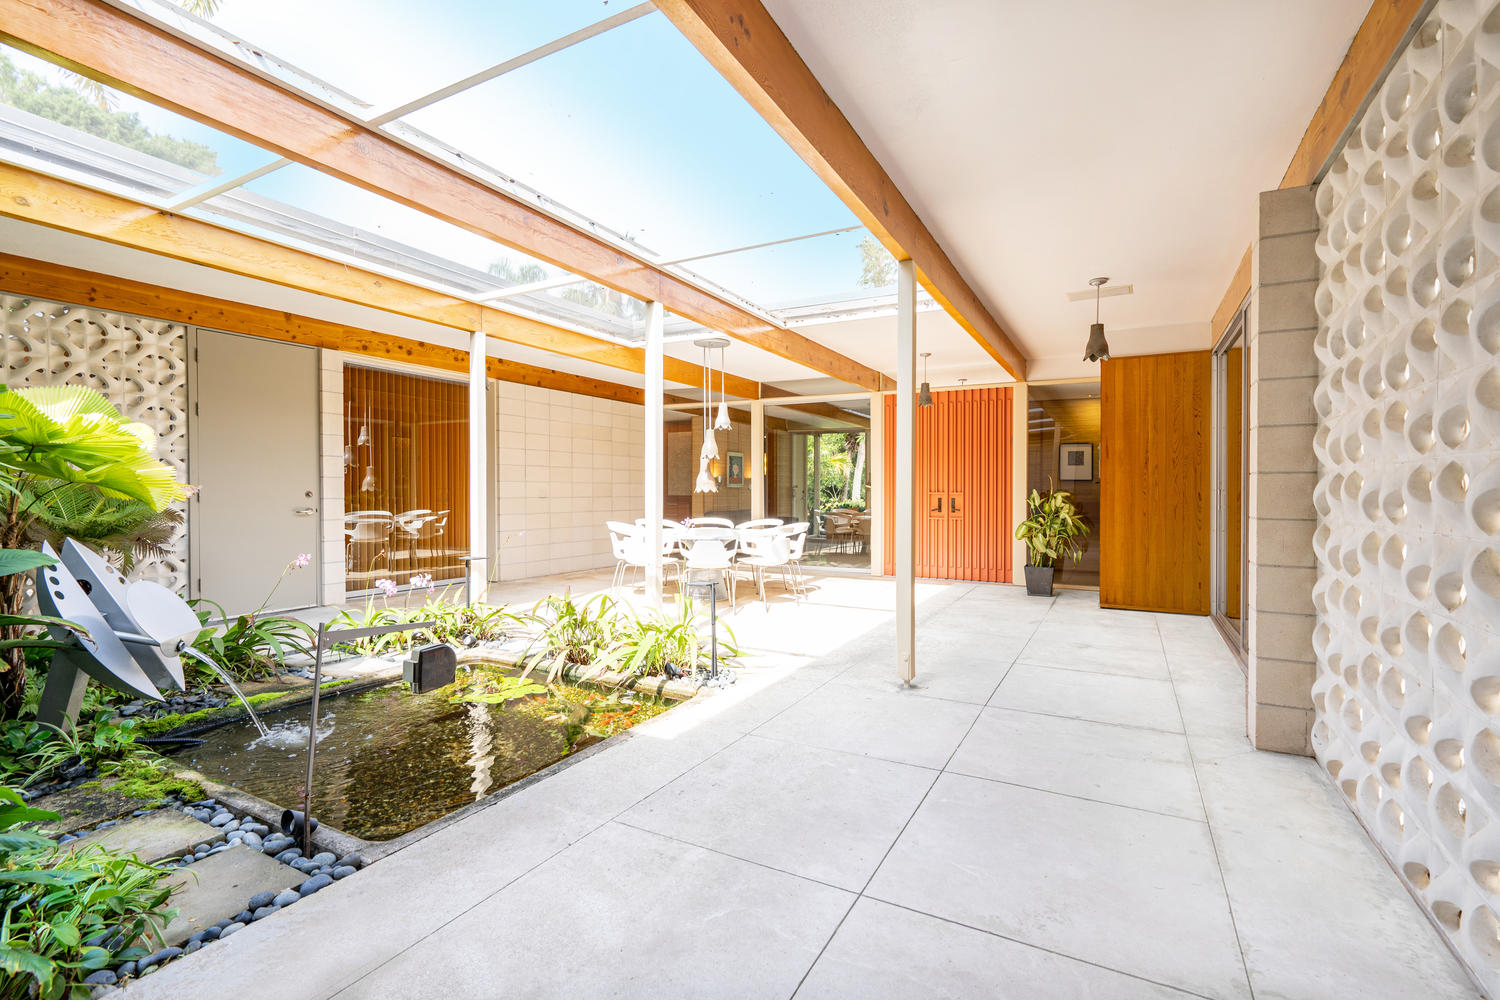 An interior covered courtyard features a pond, round dining set, and exposed beams.